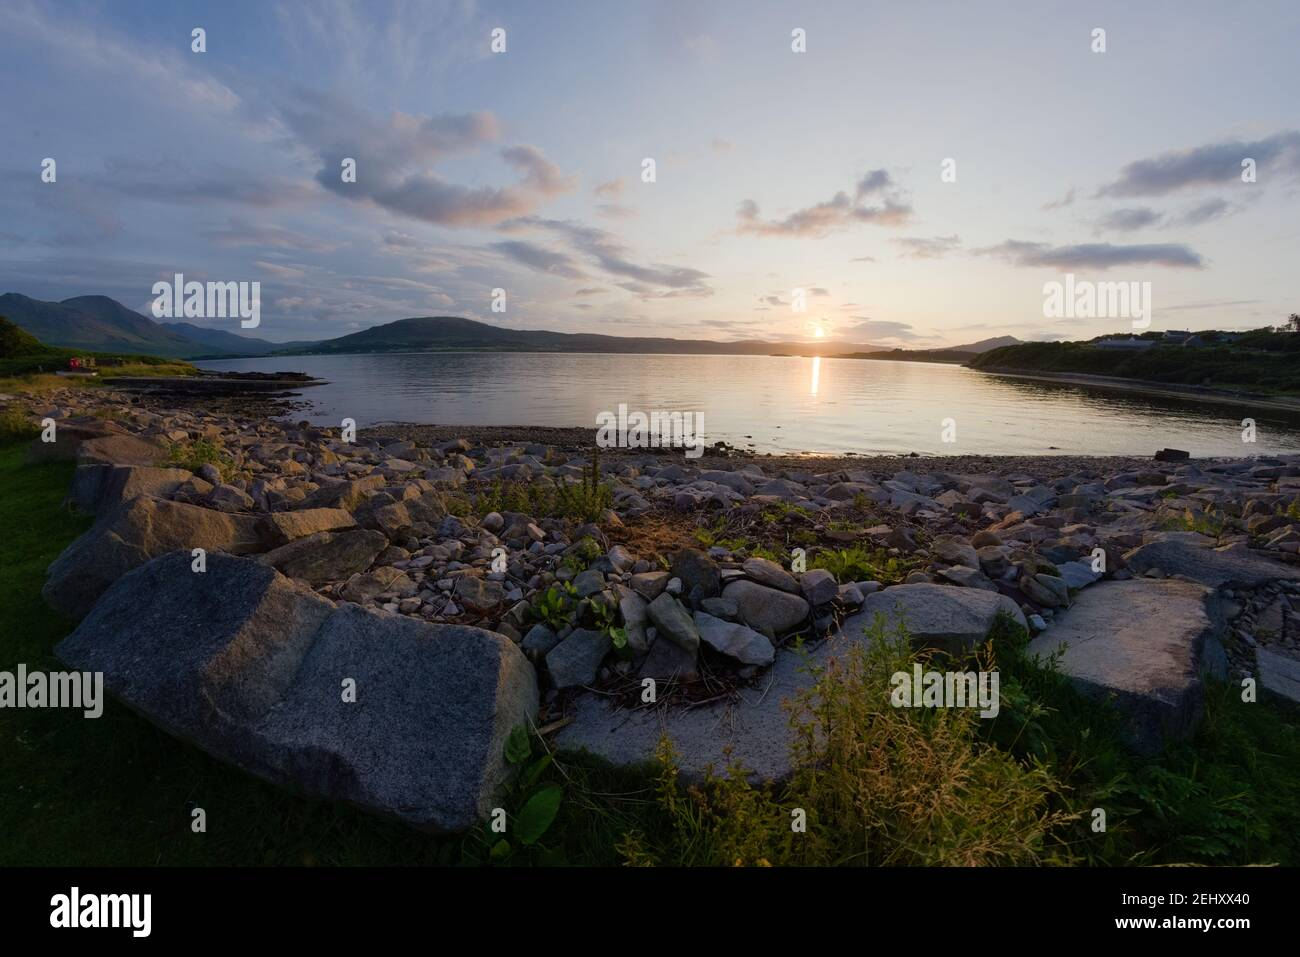 A rocky boulder sea shore at sunset. Looking west near East Suisnish on the Isle of Raasay, isle of skye in the distance. A fish eye perspective. Stock Photo